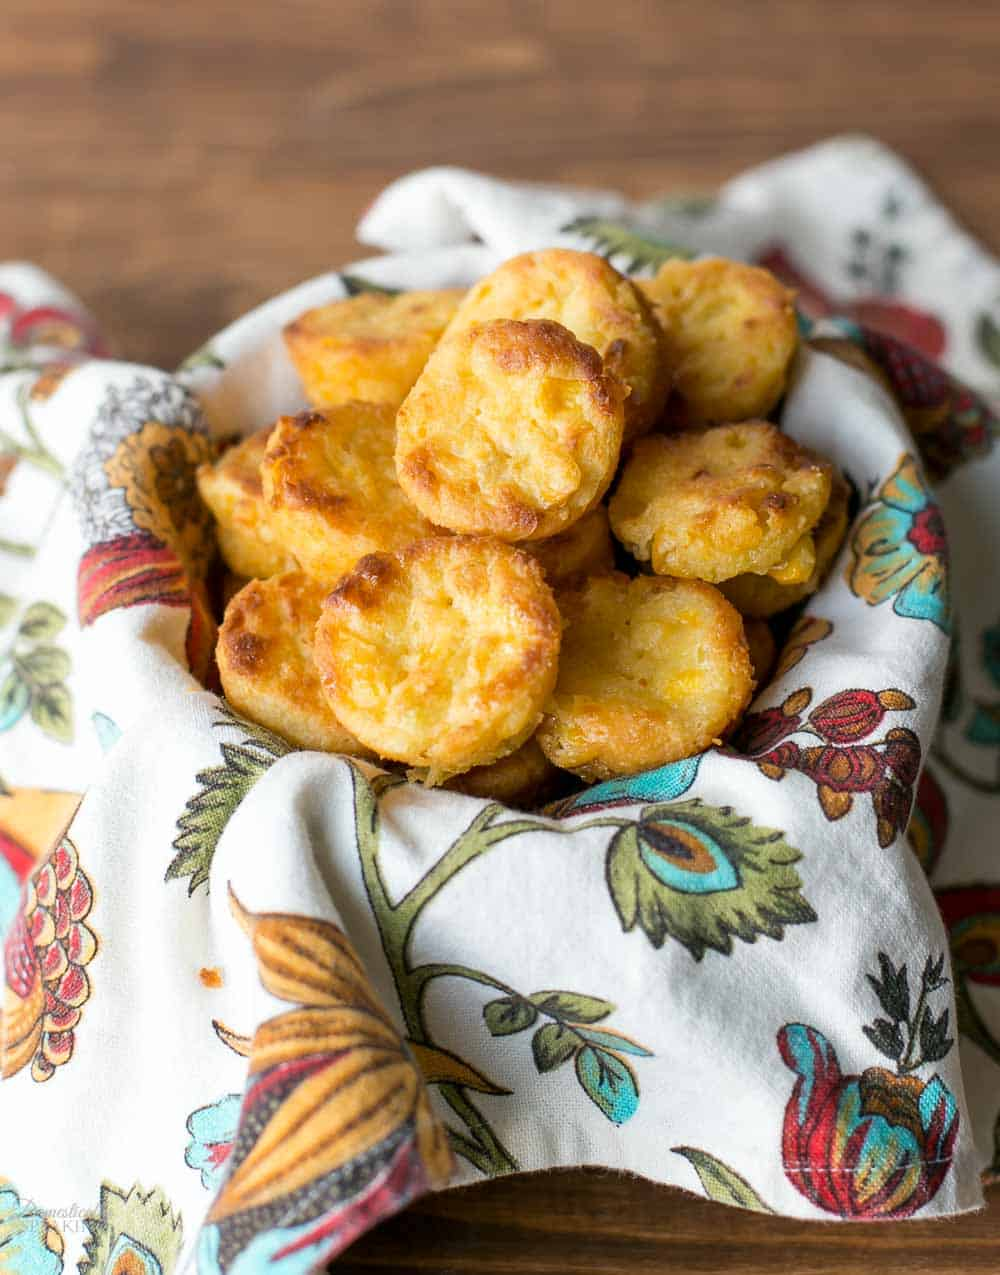 Corn Casserole Bites are mini corn cakes filled with fresh corn. They are great as a side dish or served as an appetizer.